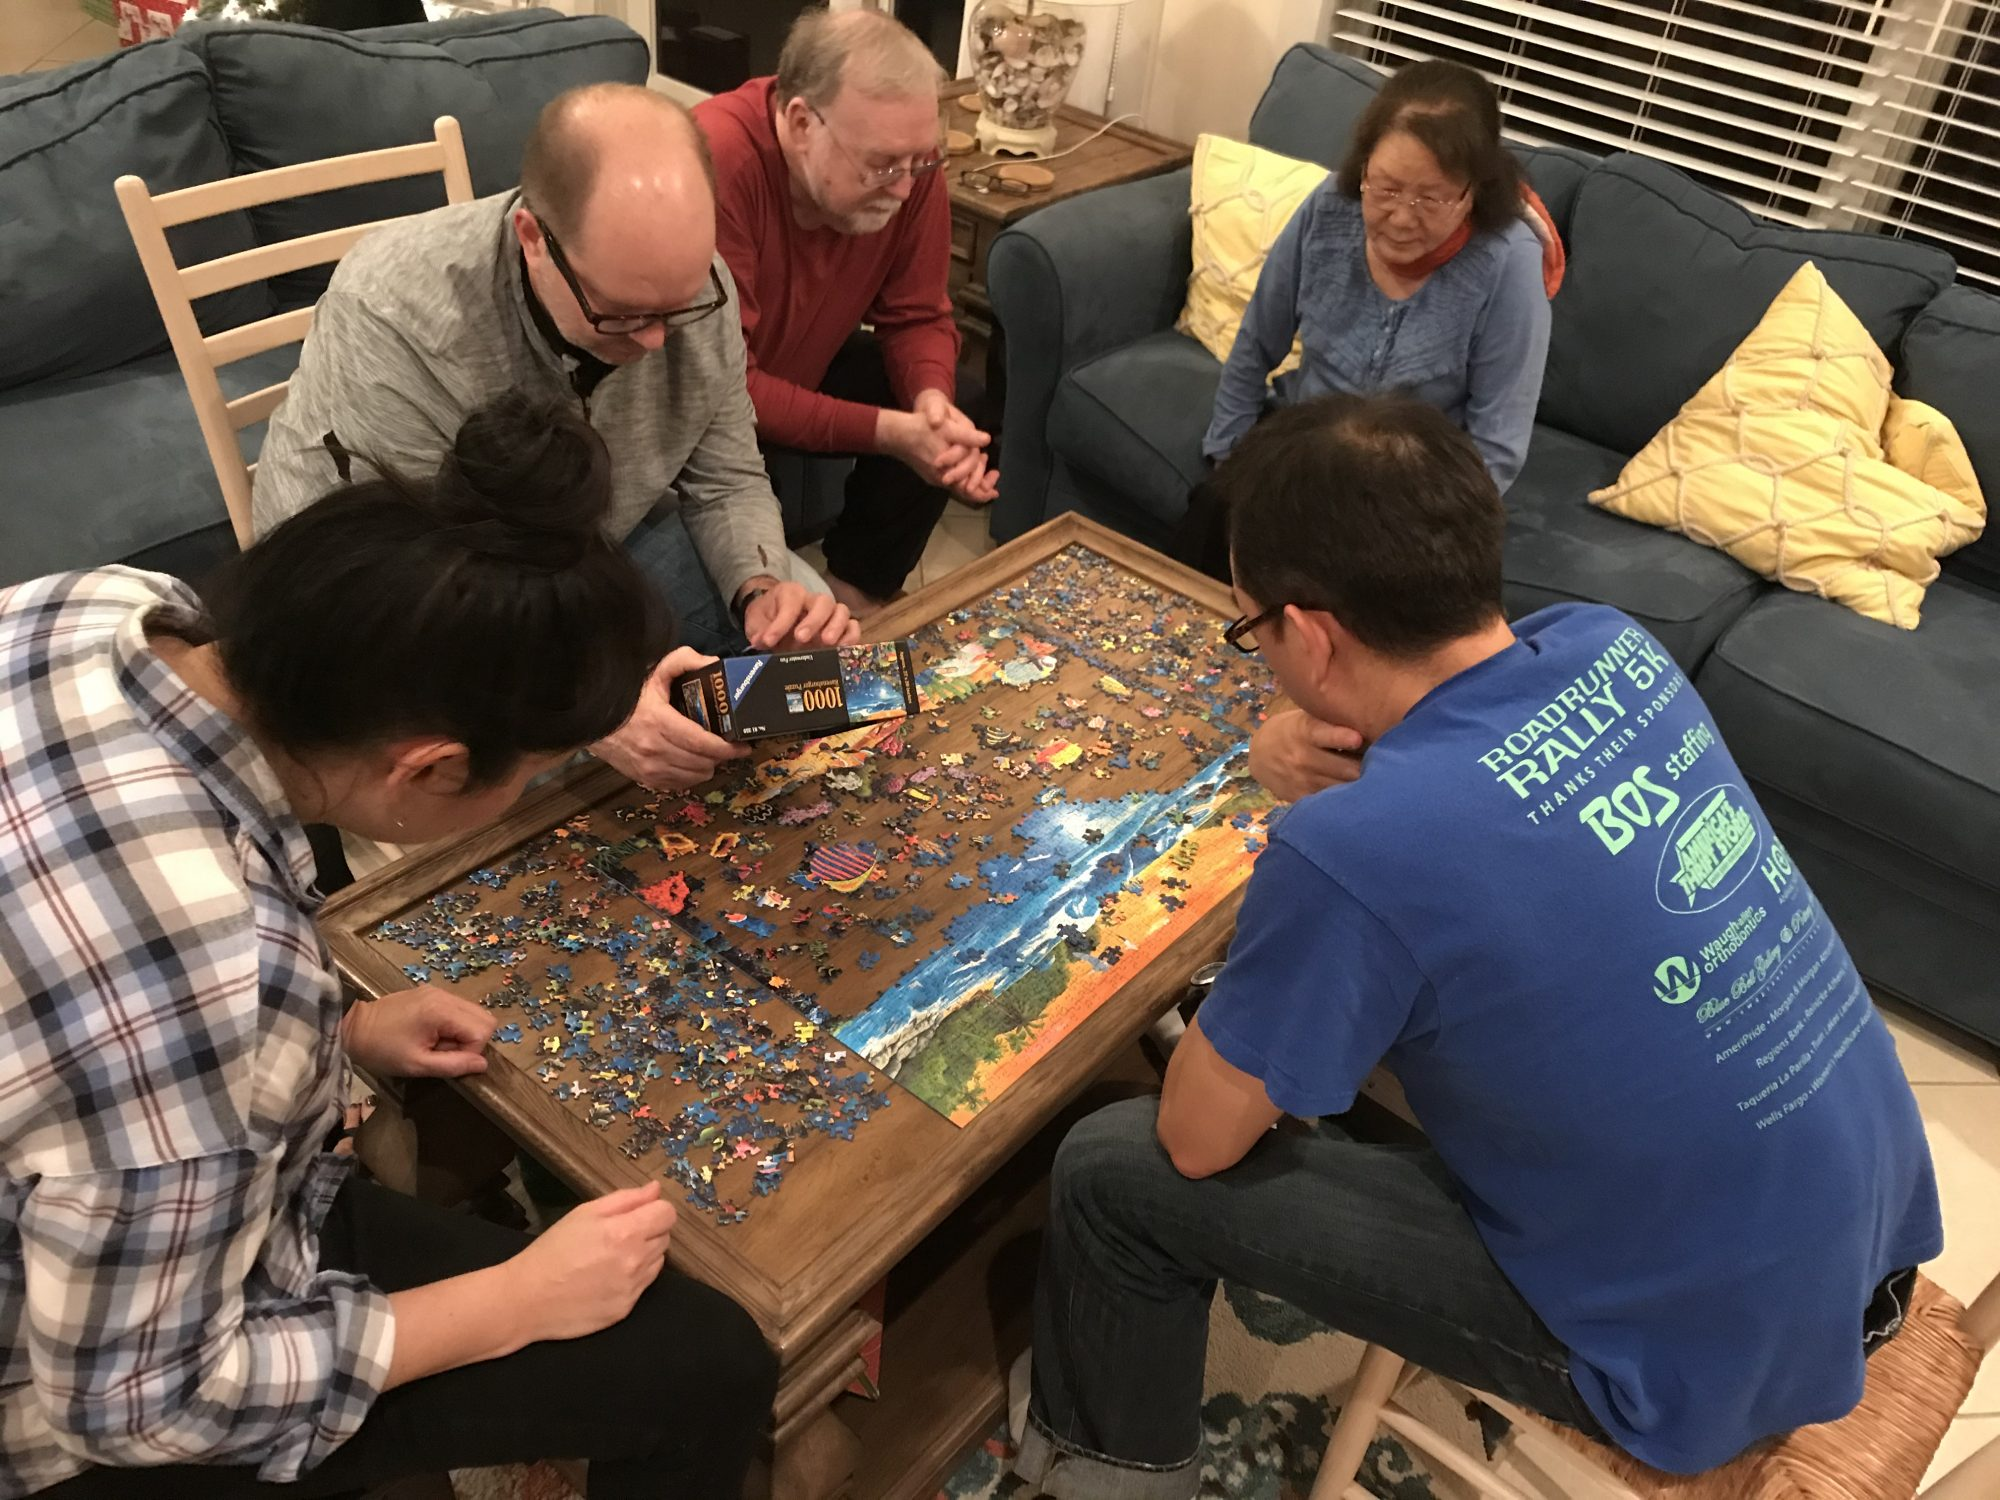 Ann Pittman and her family working on a puzzle at Thanksgiving